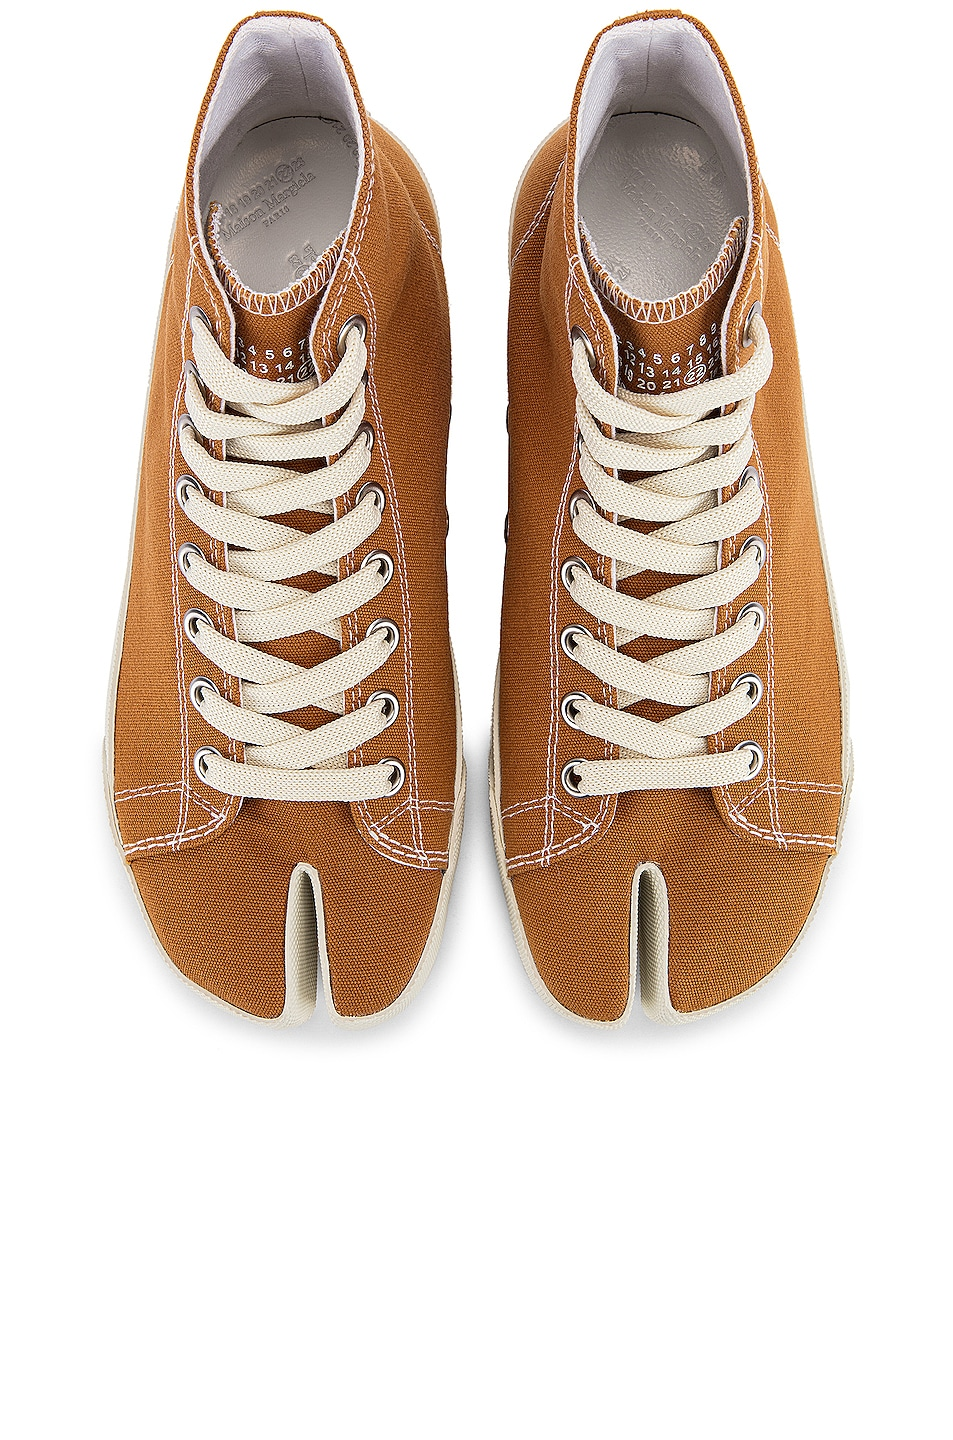 Image 1 of Maison Margiela Tabi High Top Canvas Sneakers in Nude